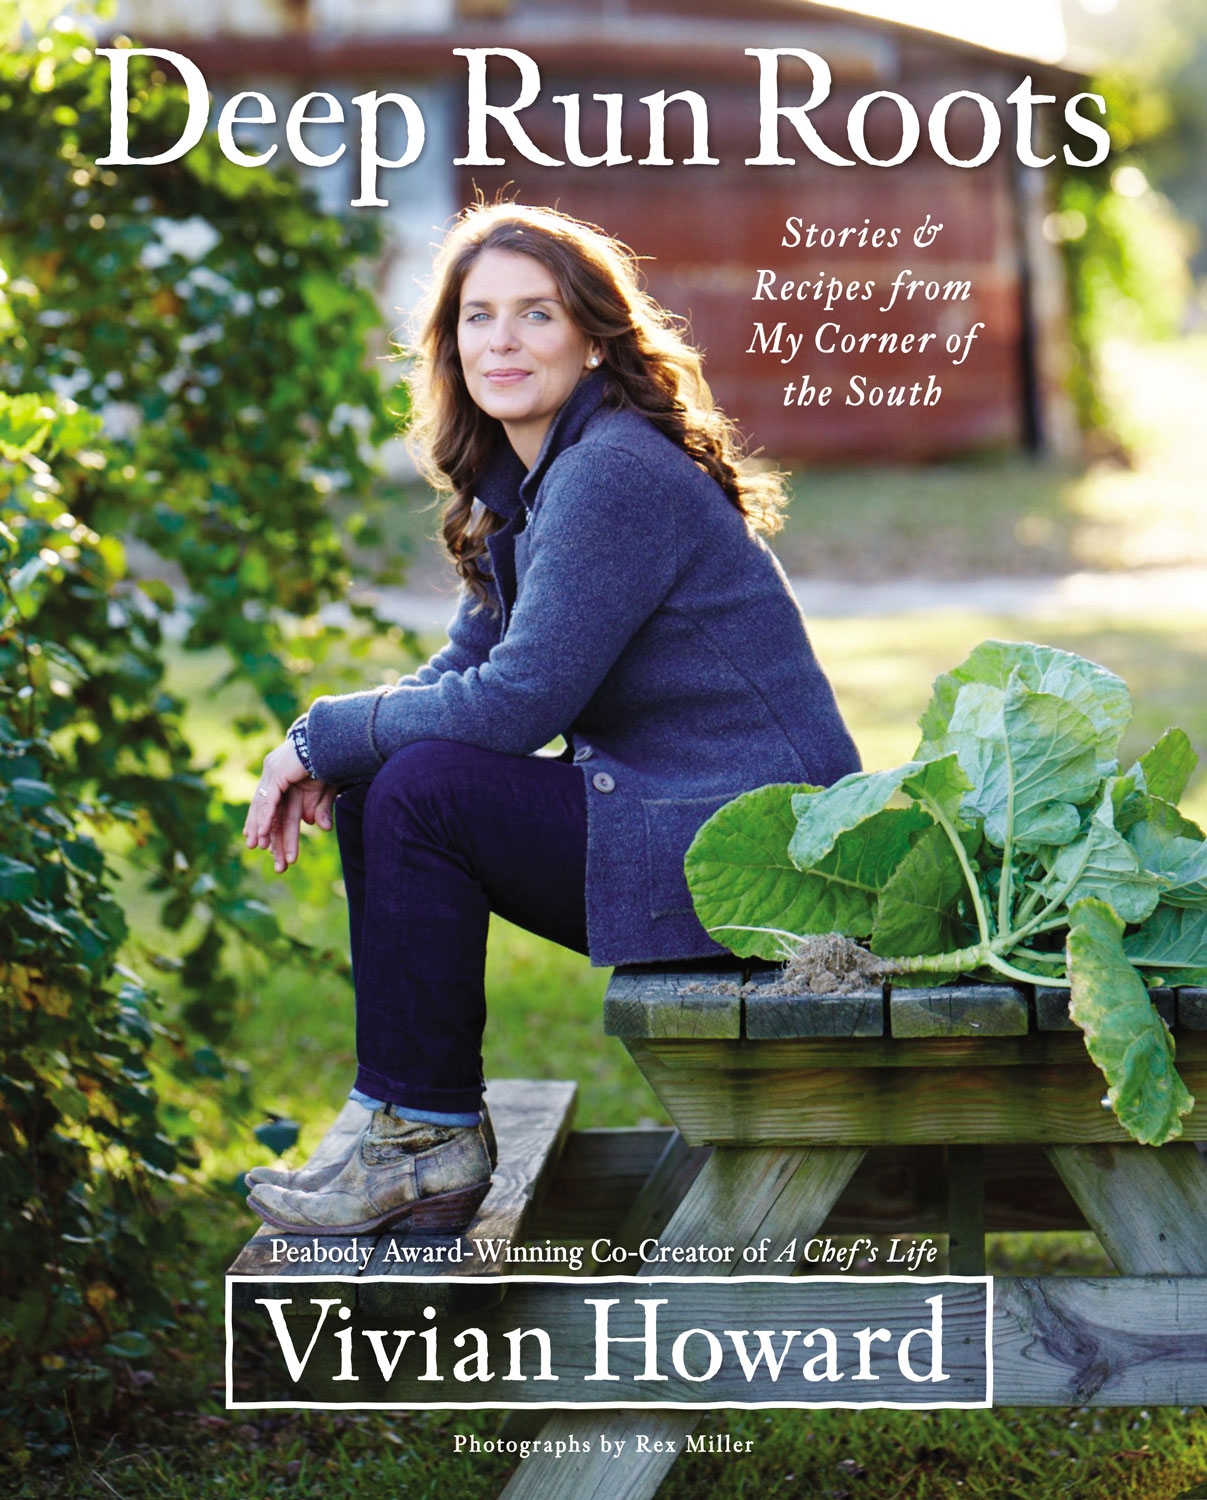 drr-cover_vivian-howard_credit-stacey-van-berkel